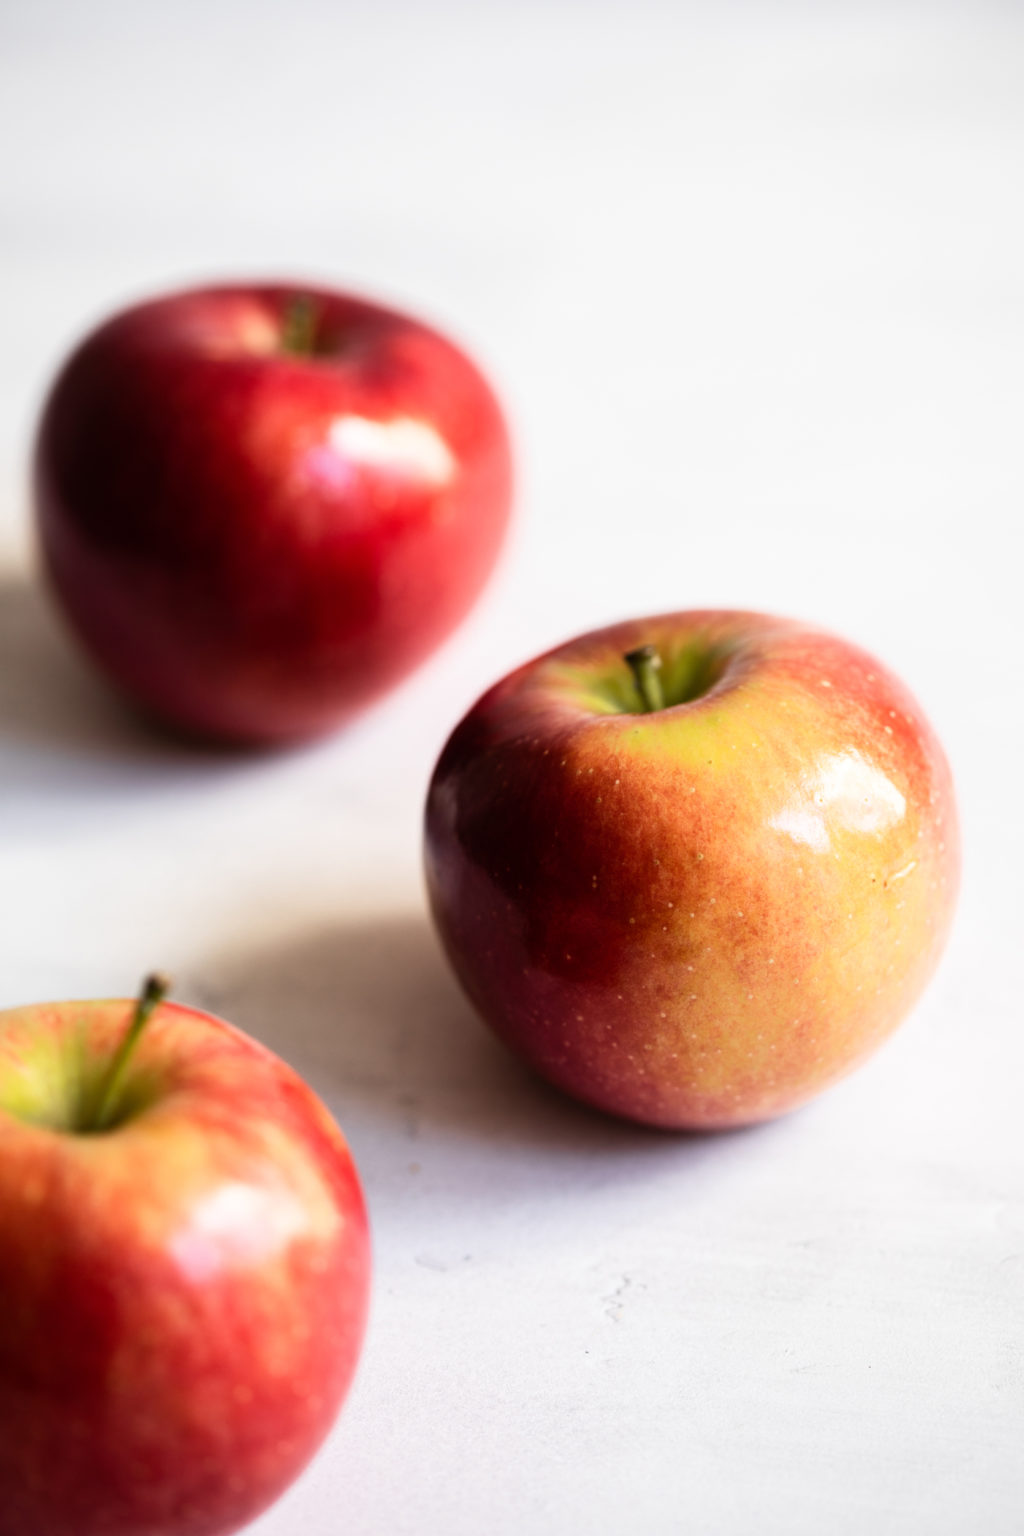 A photograph of three crimson red and golden apples on a bright, white backdrop.